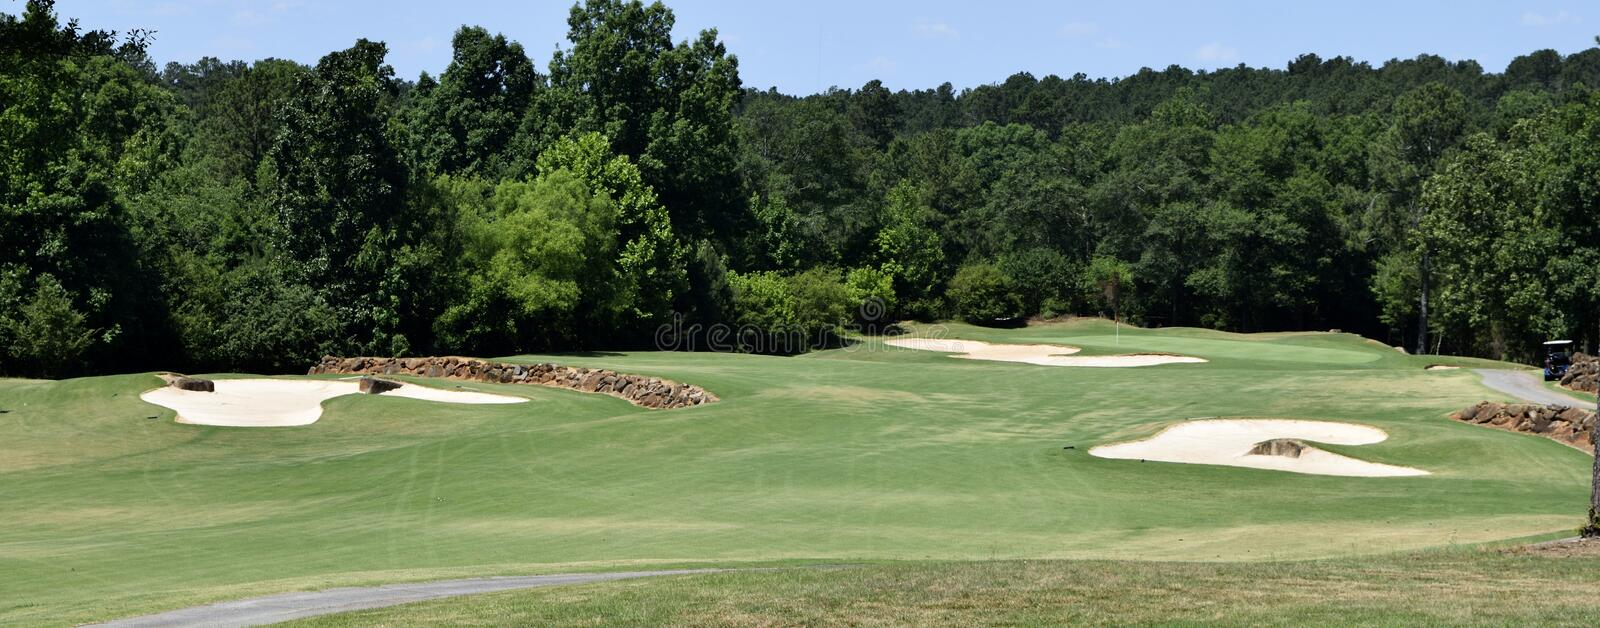 Golf course fairway and bunkers. Scenic view of golf course fairway with sand bunkers stock photo